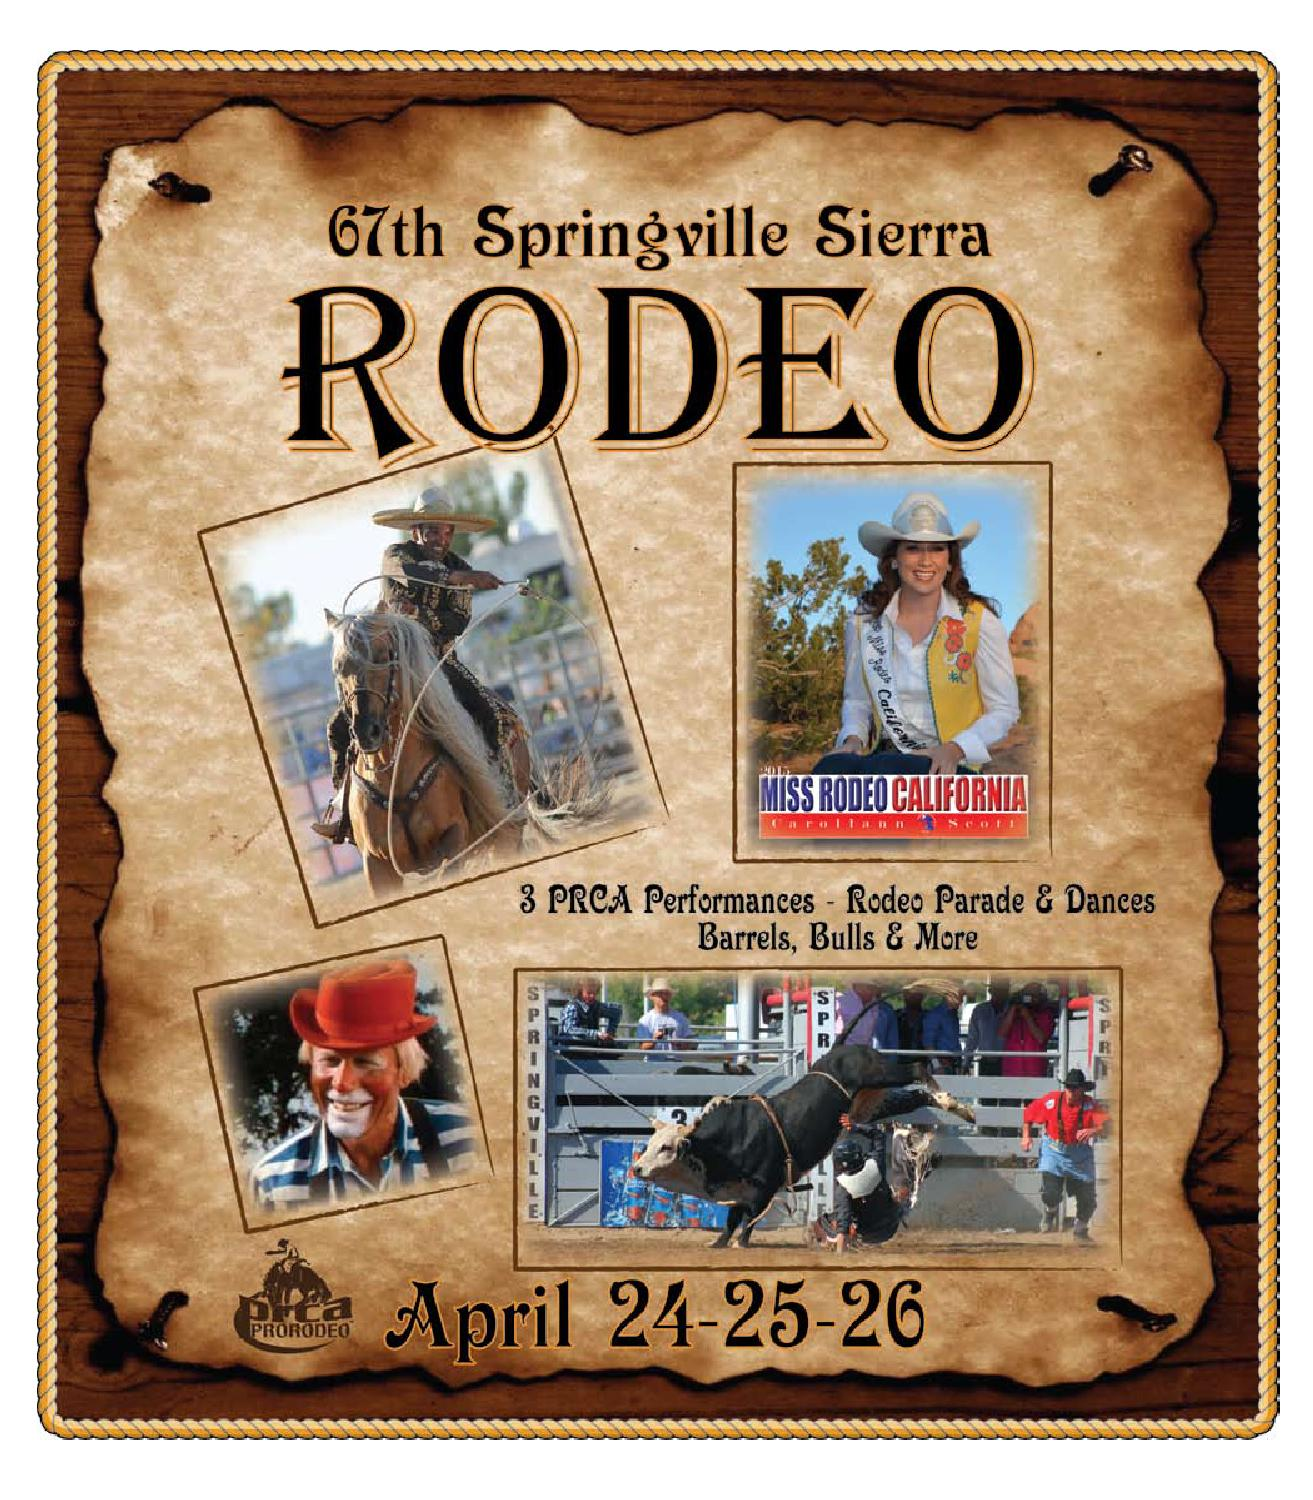 67th Springville Sierra Rodeo 2015